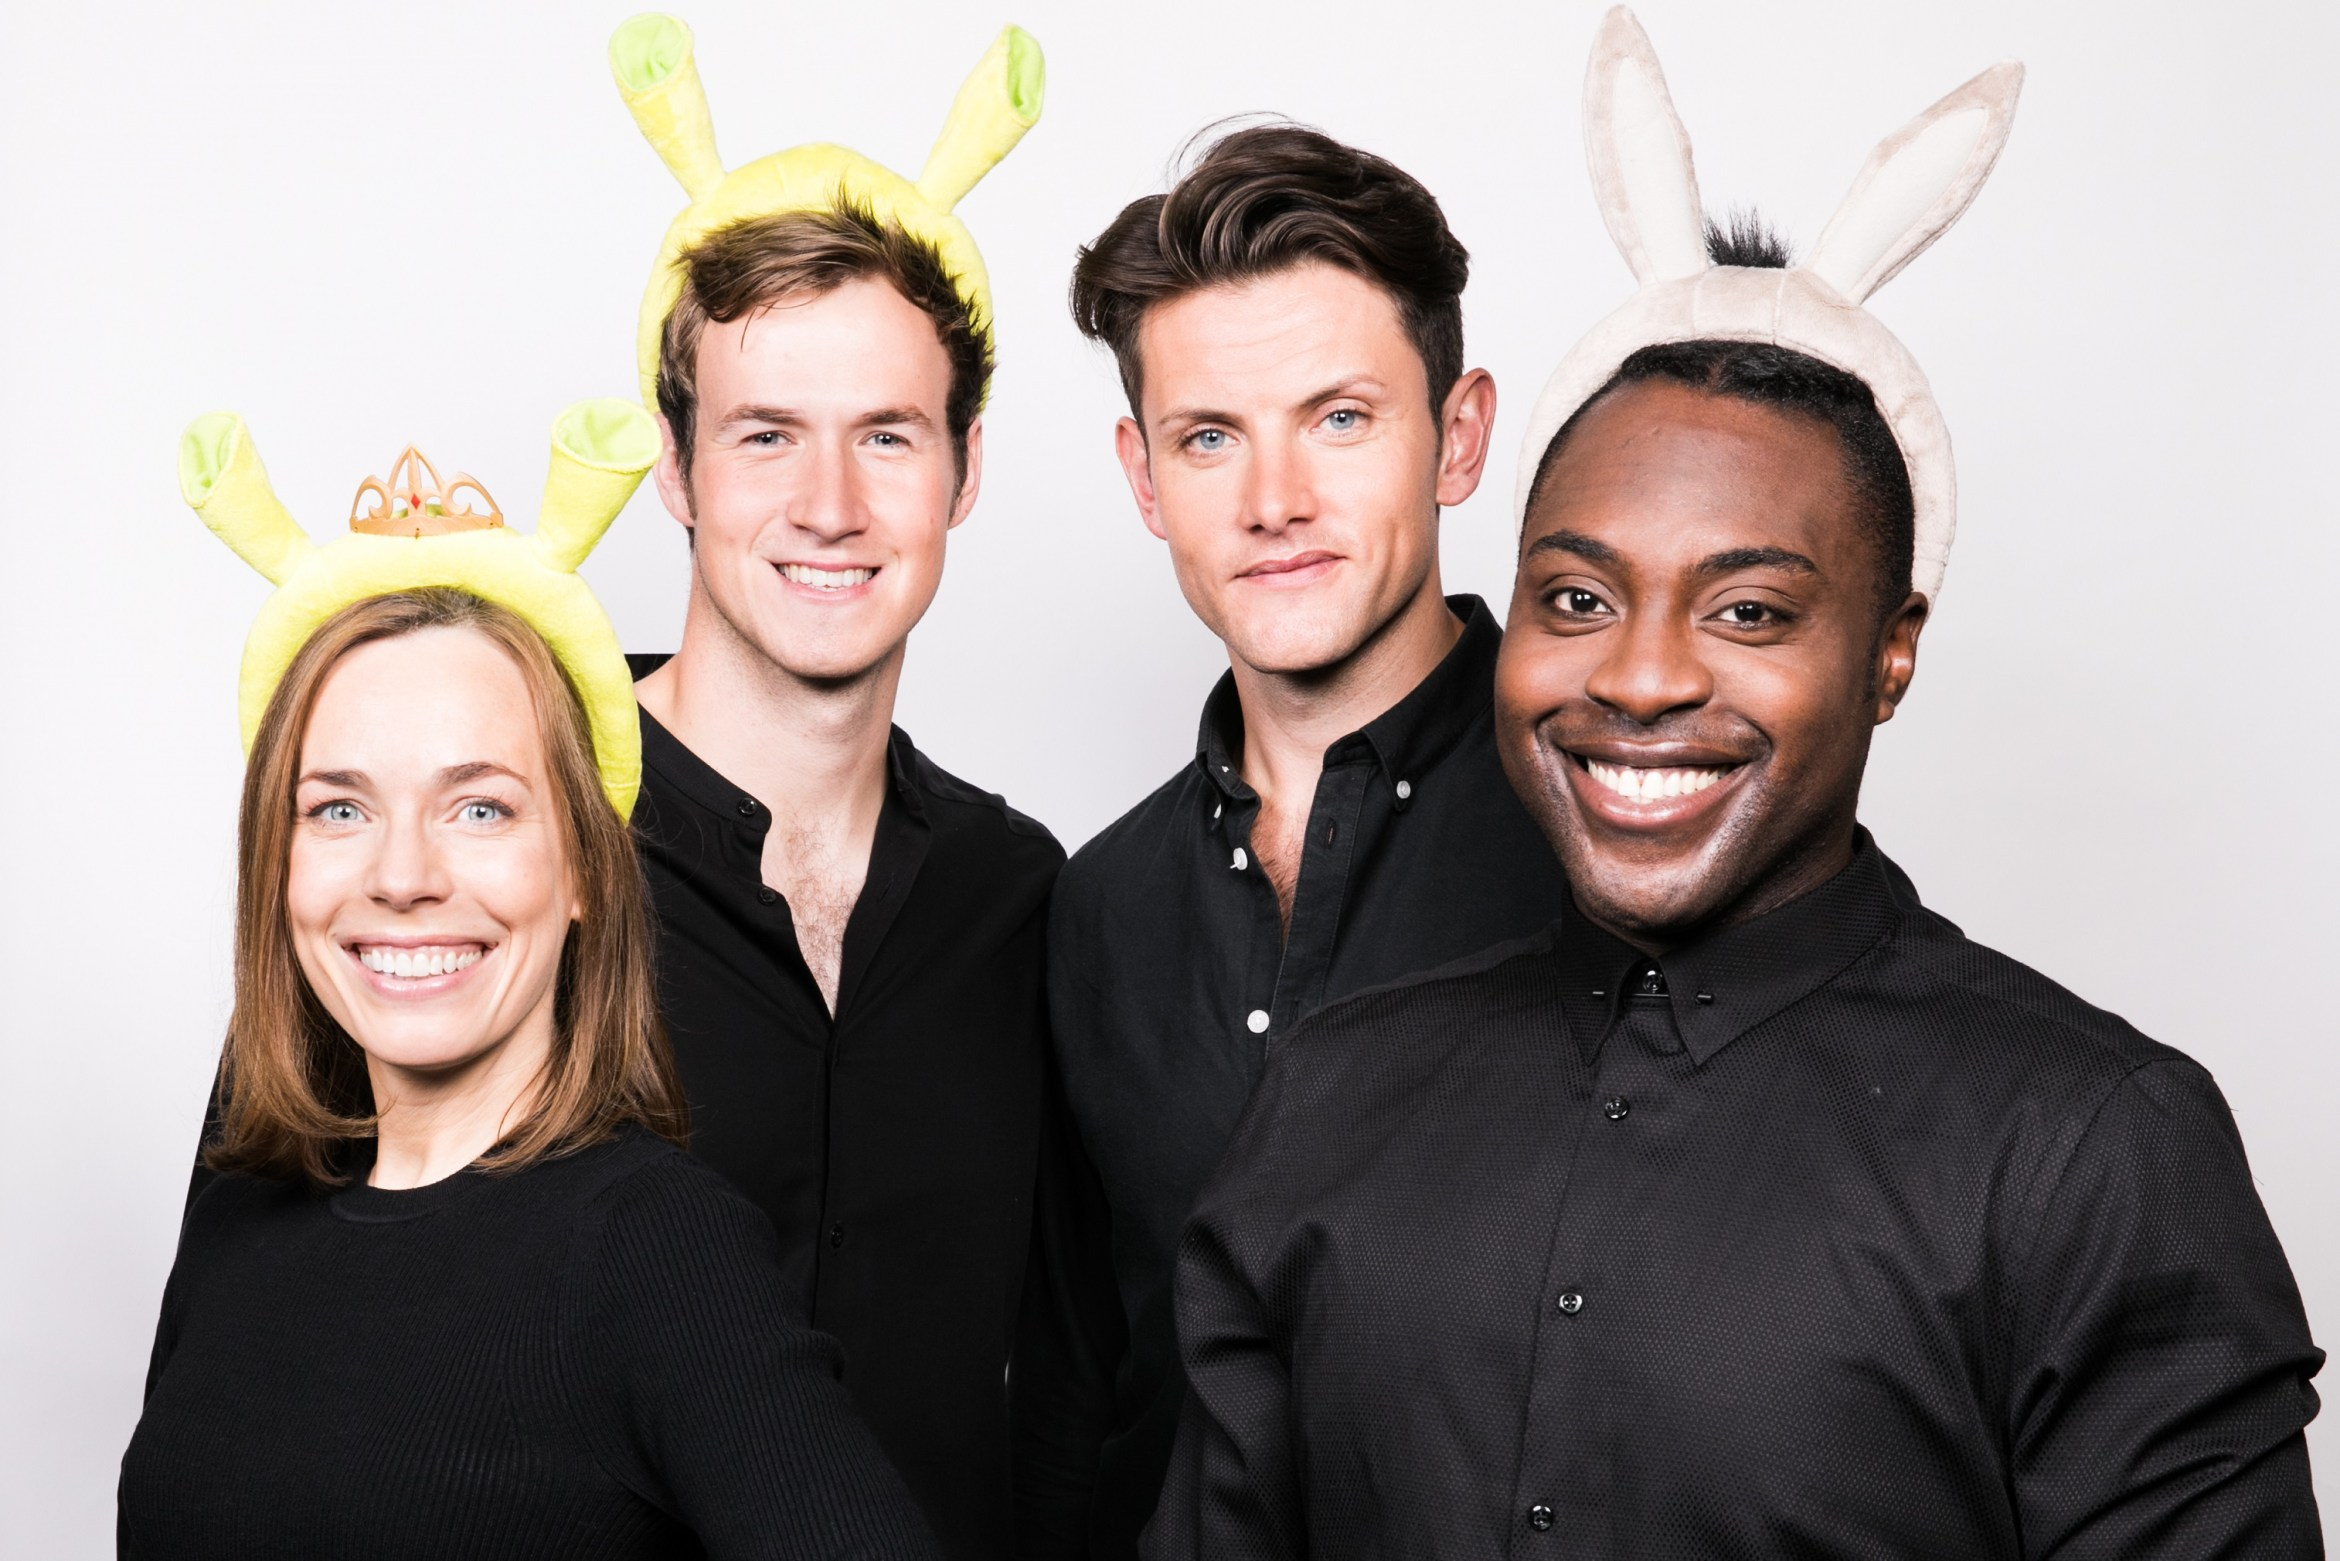 Laura-Main-Steffan-Harri-Samuel-Holmes-and-Marcus-Ayton-star-in-Shrek-the-Musical-UK-and-Ireland-Tour.jpg